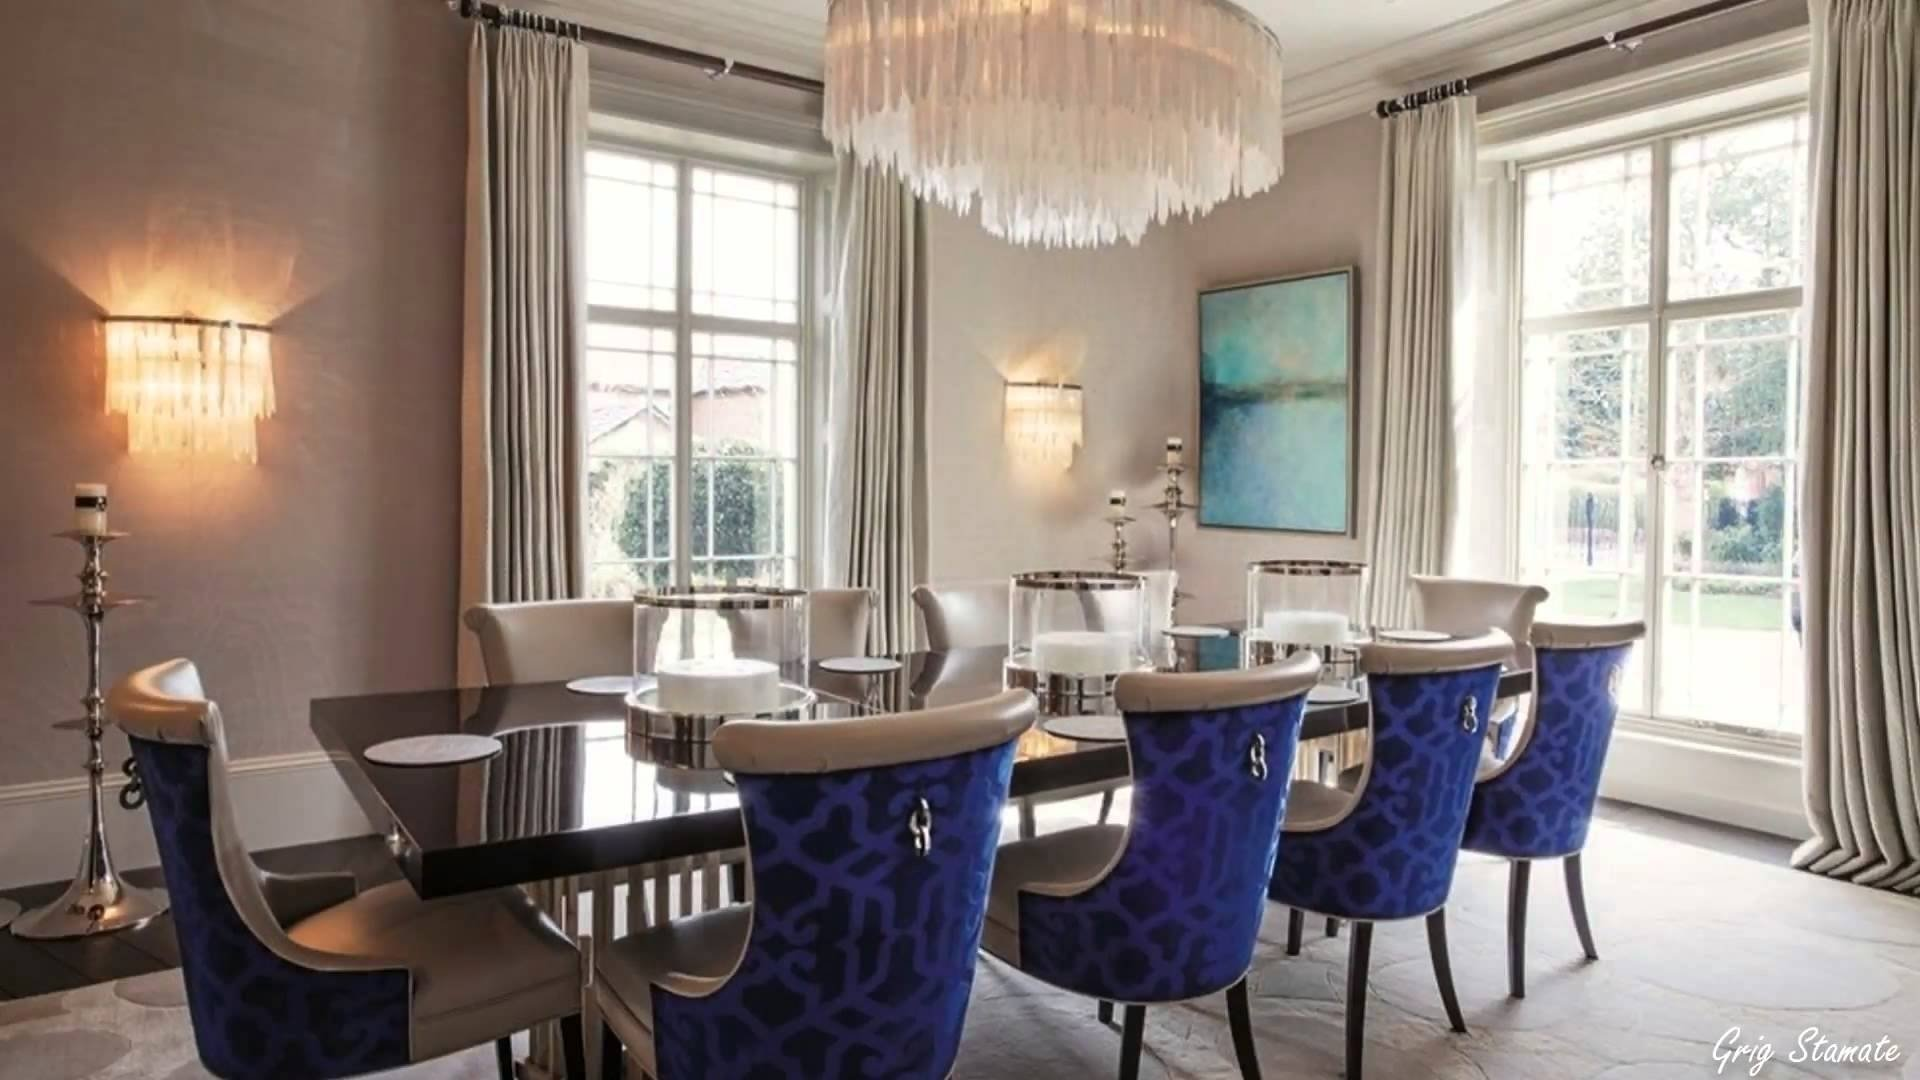 luxurious formal dining room design ideas, elegant decorating ideas